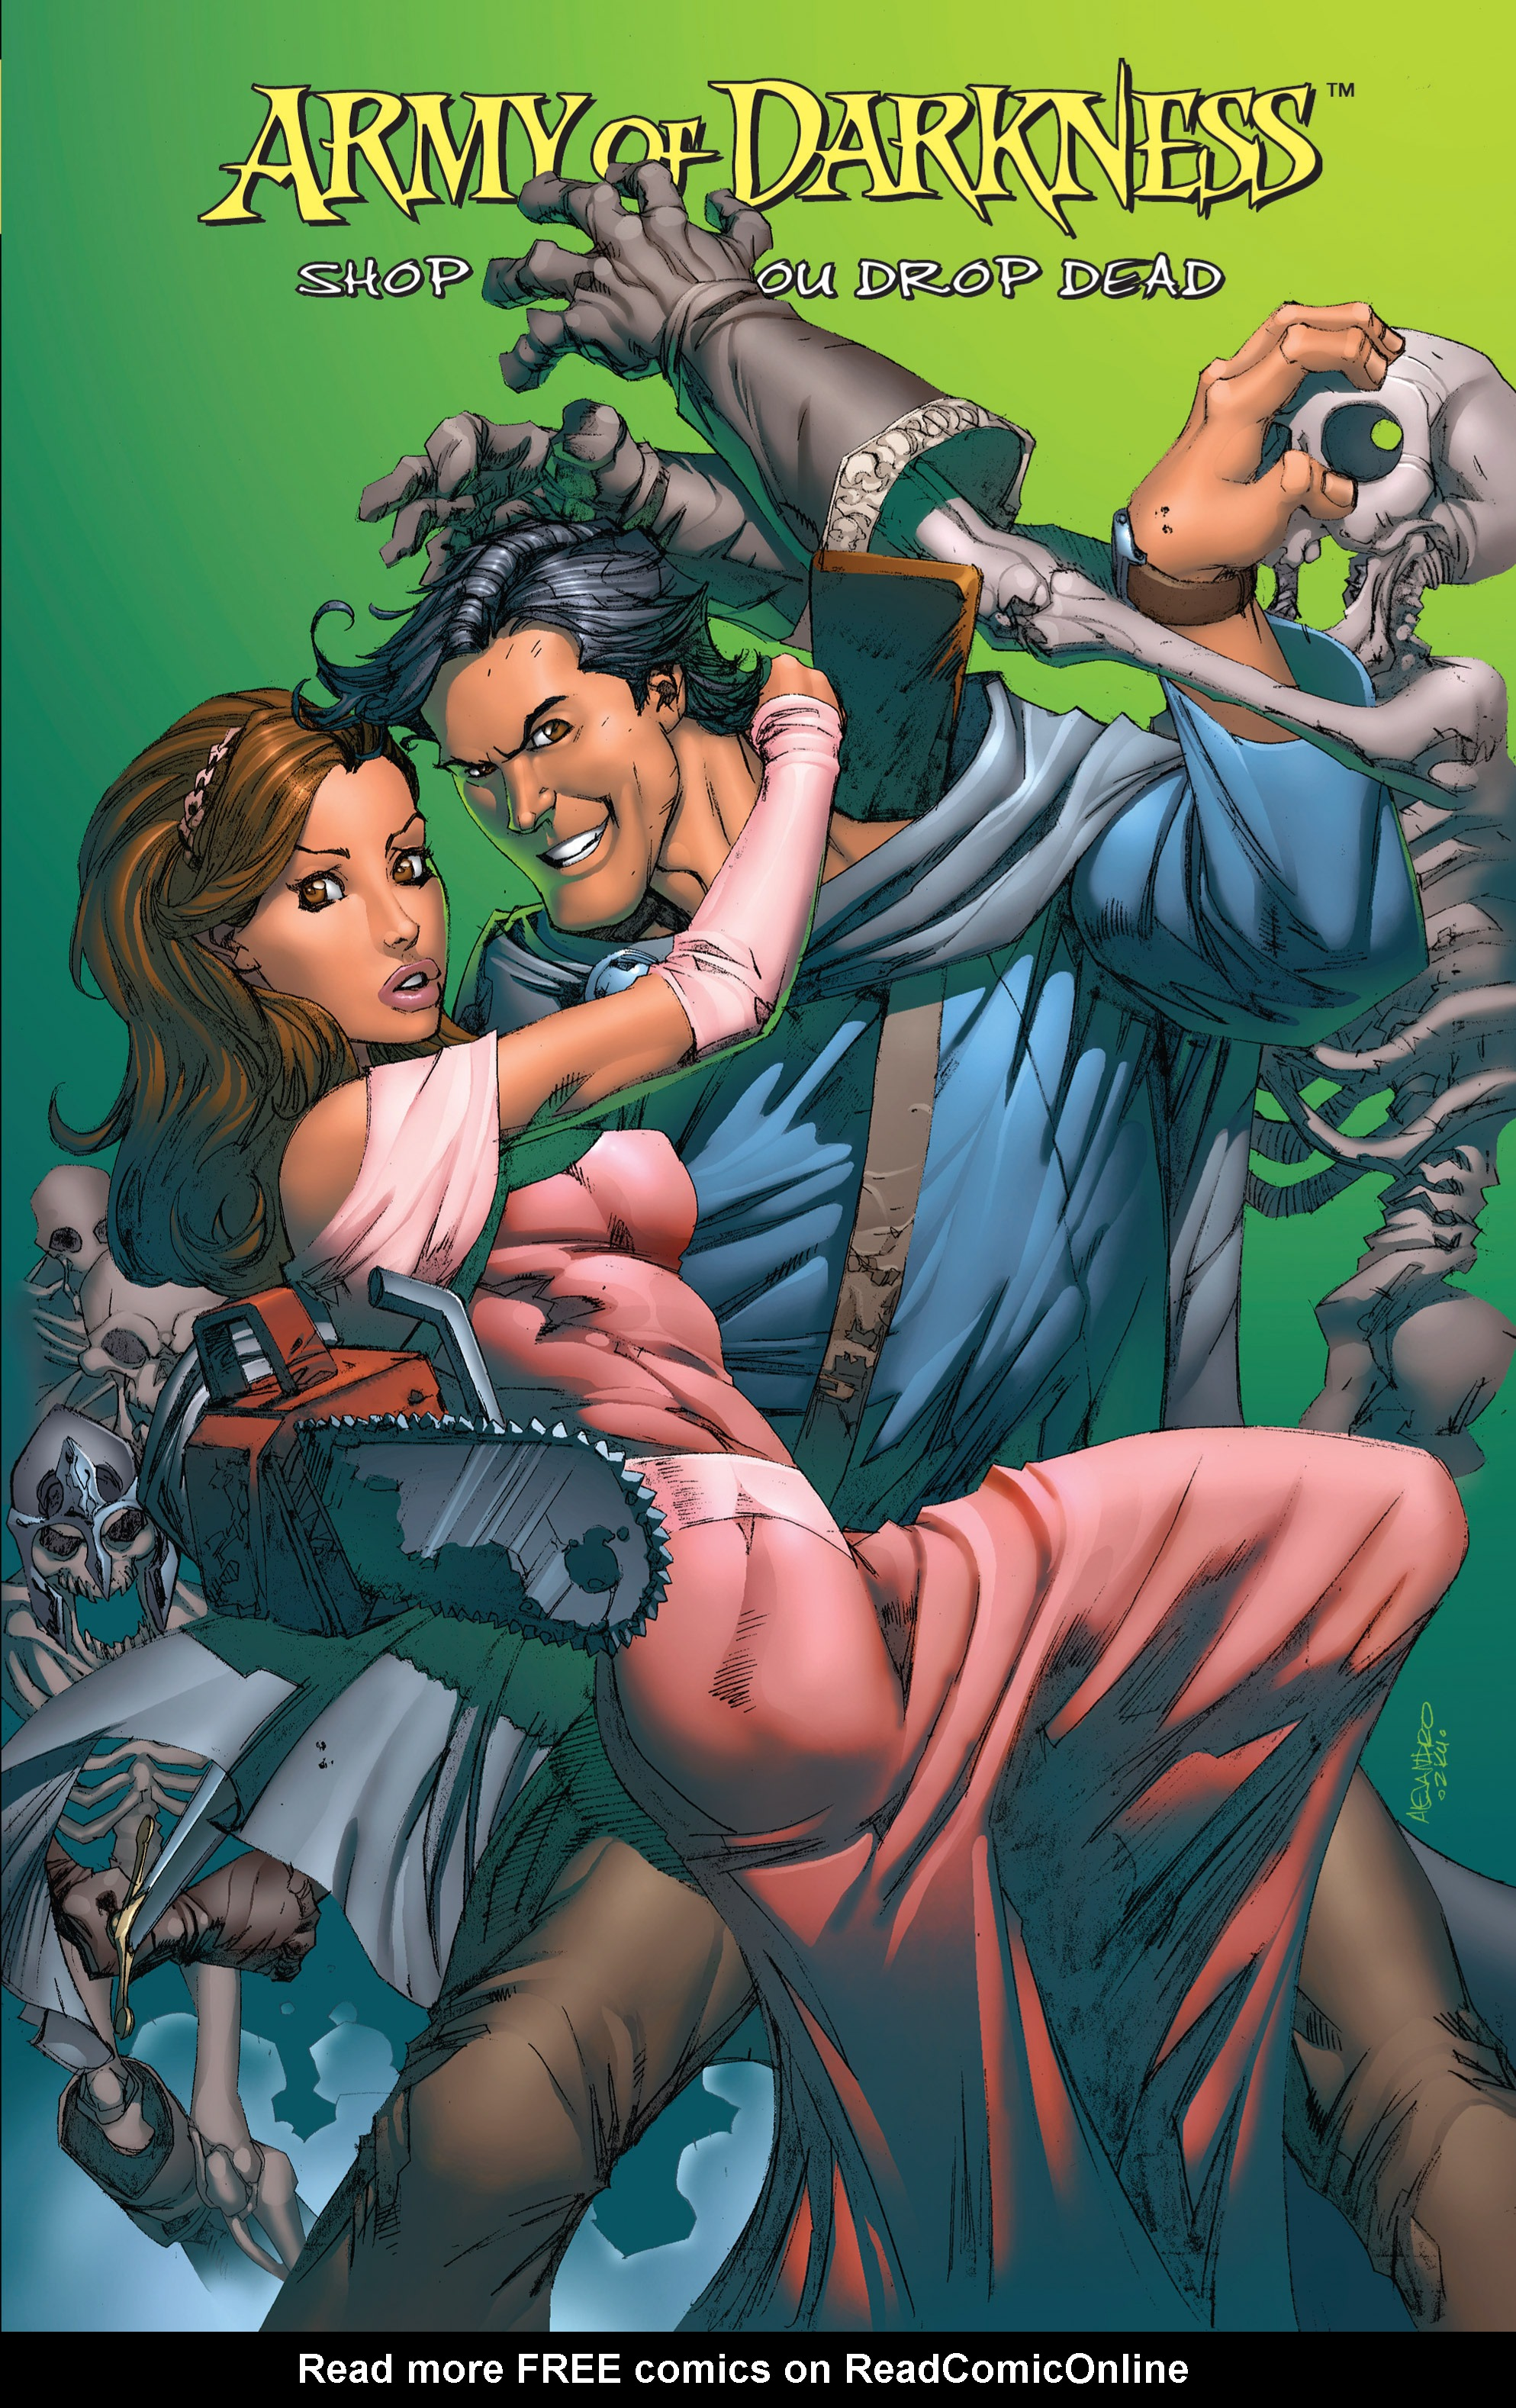 Army of Darkness: Shop Till You Drop Dead TPB Page 1